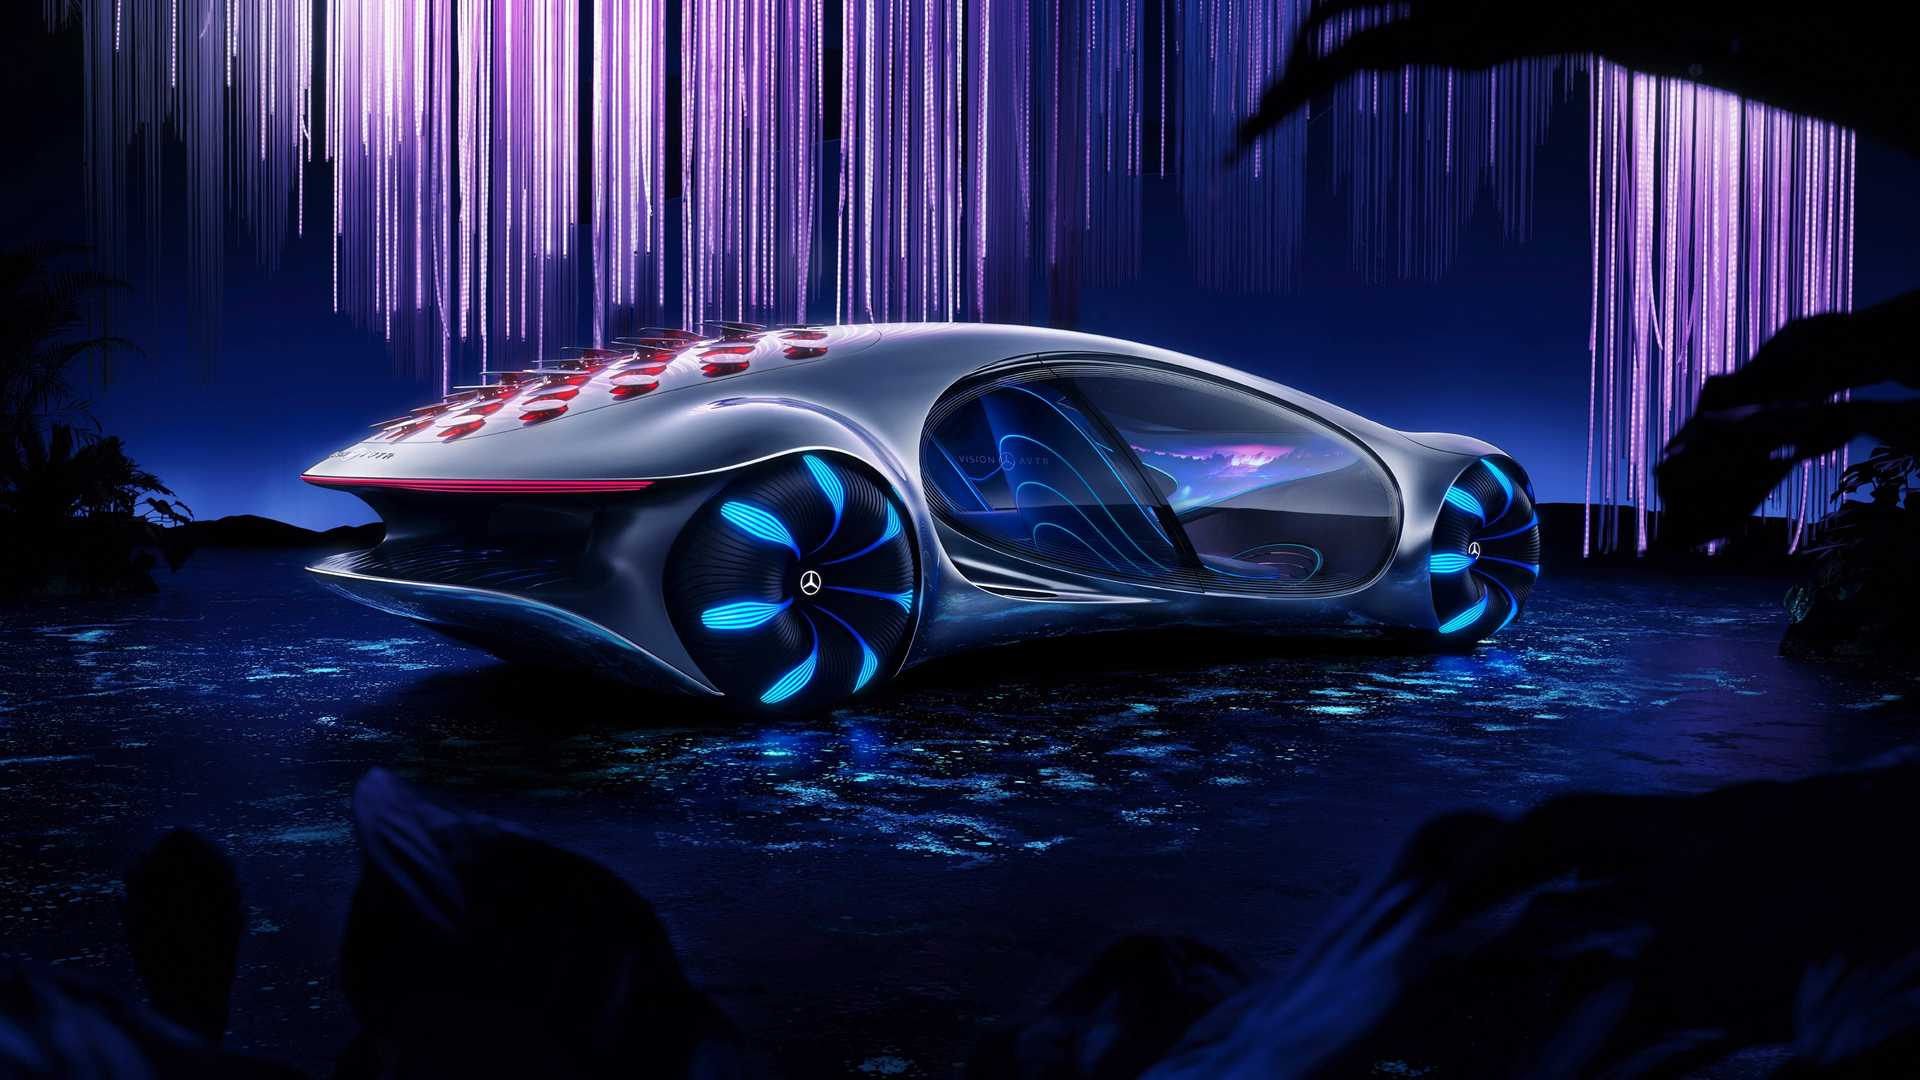 2020 CES Mercedes Benz Showcases Their Concept Vision AVTR In 1920x1080